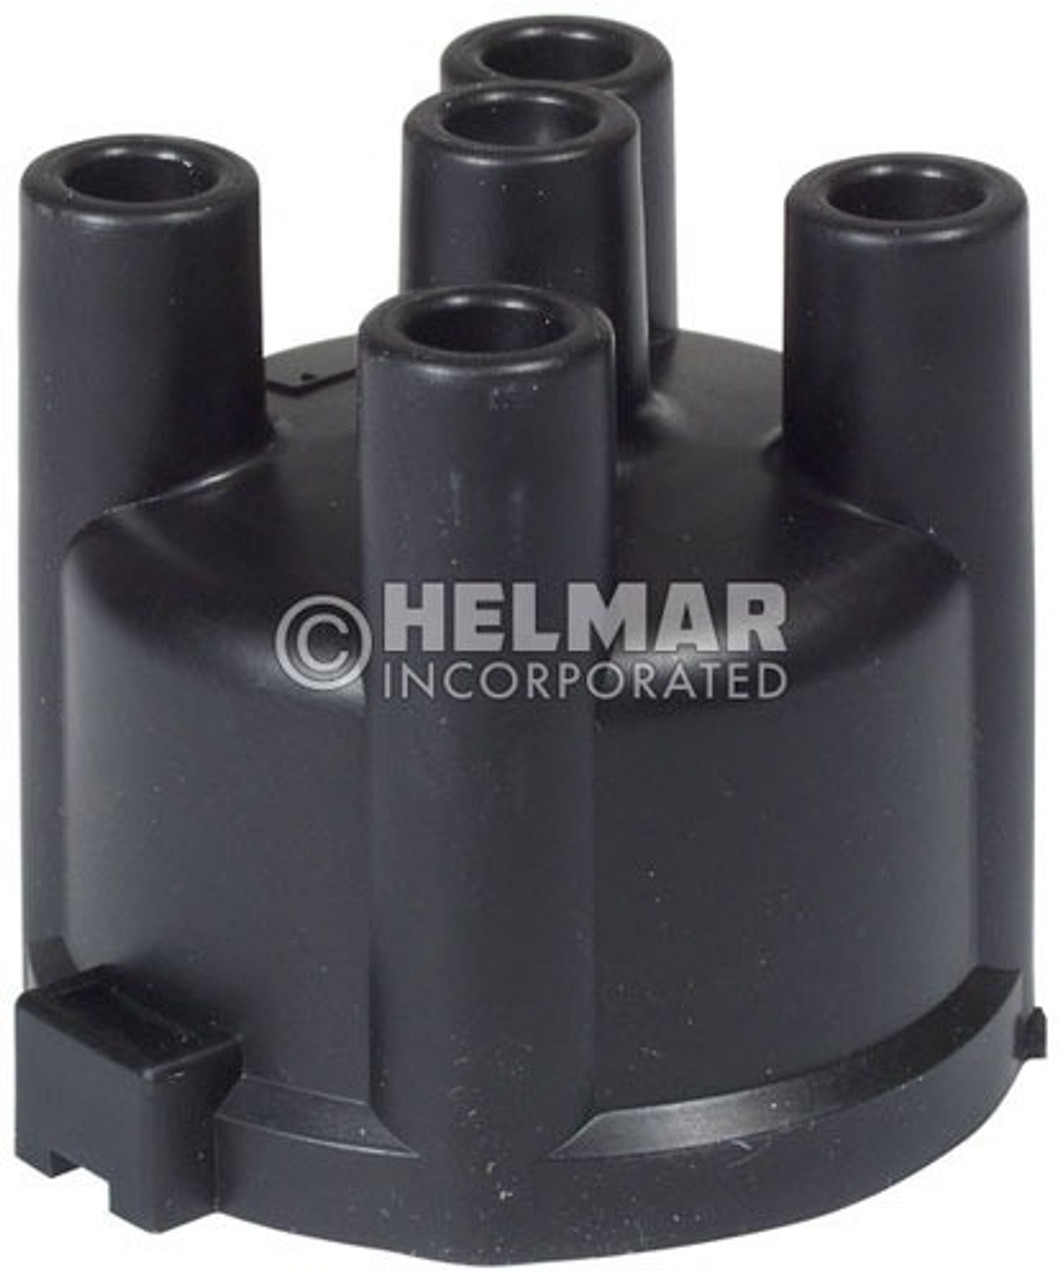 326836 Hyster Distributor Cap for VA Engines, Type DC-14